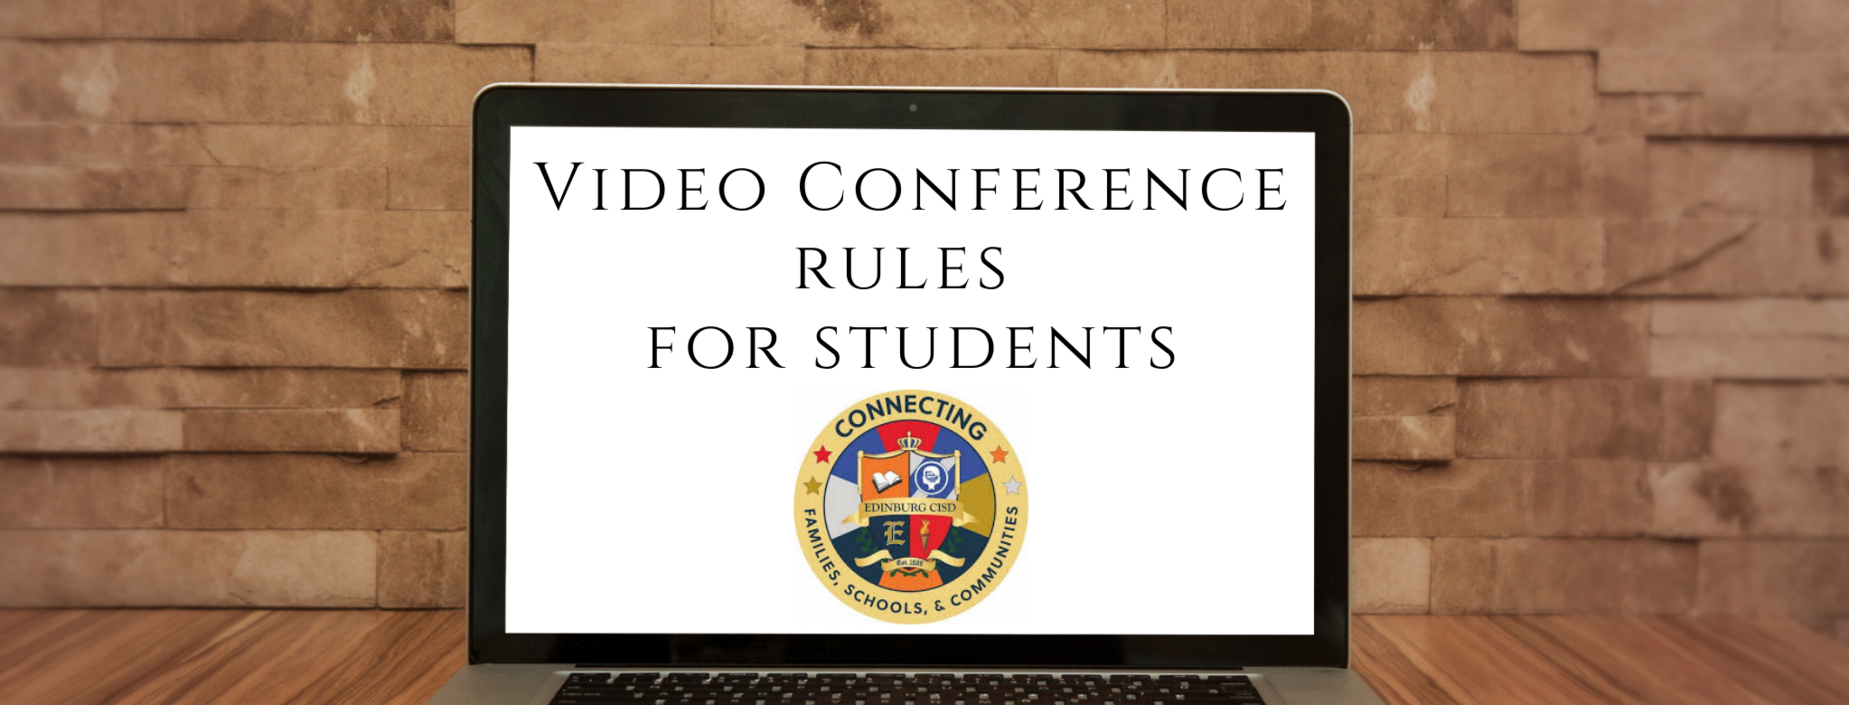 Computer Screen titled Video Conference Rules for Students